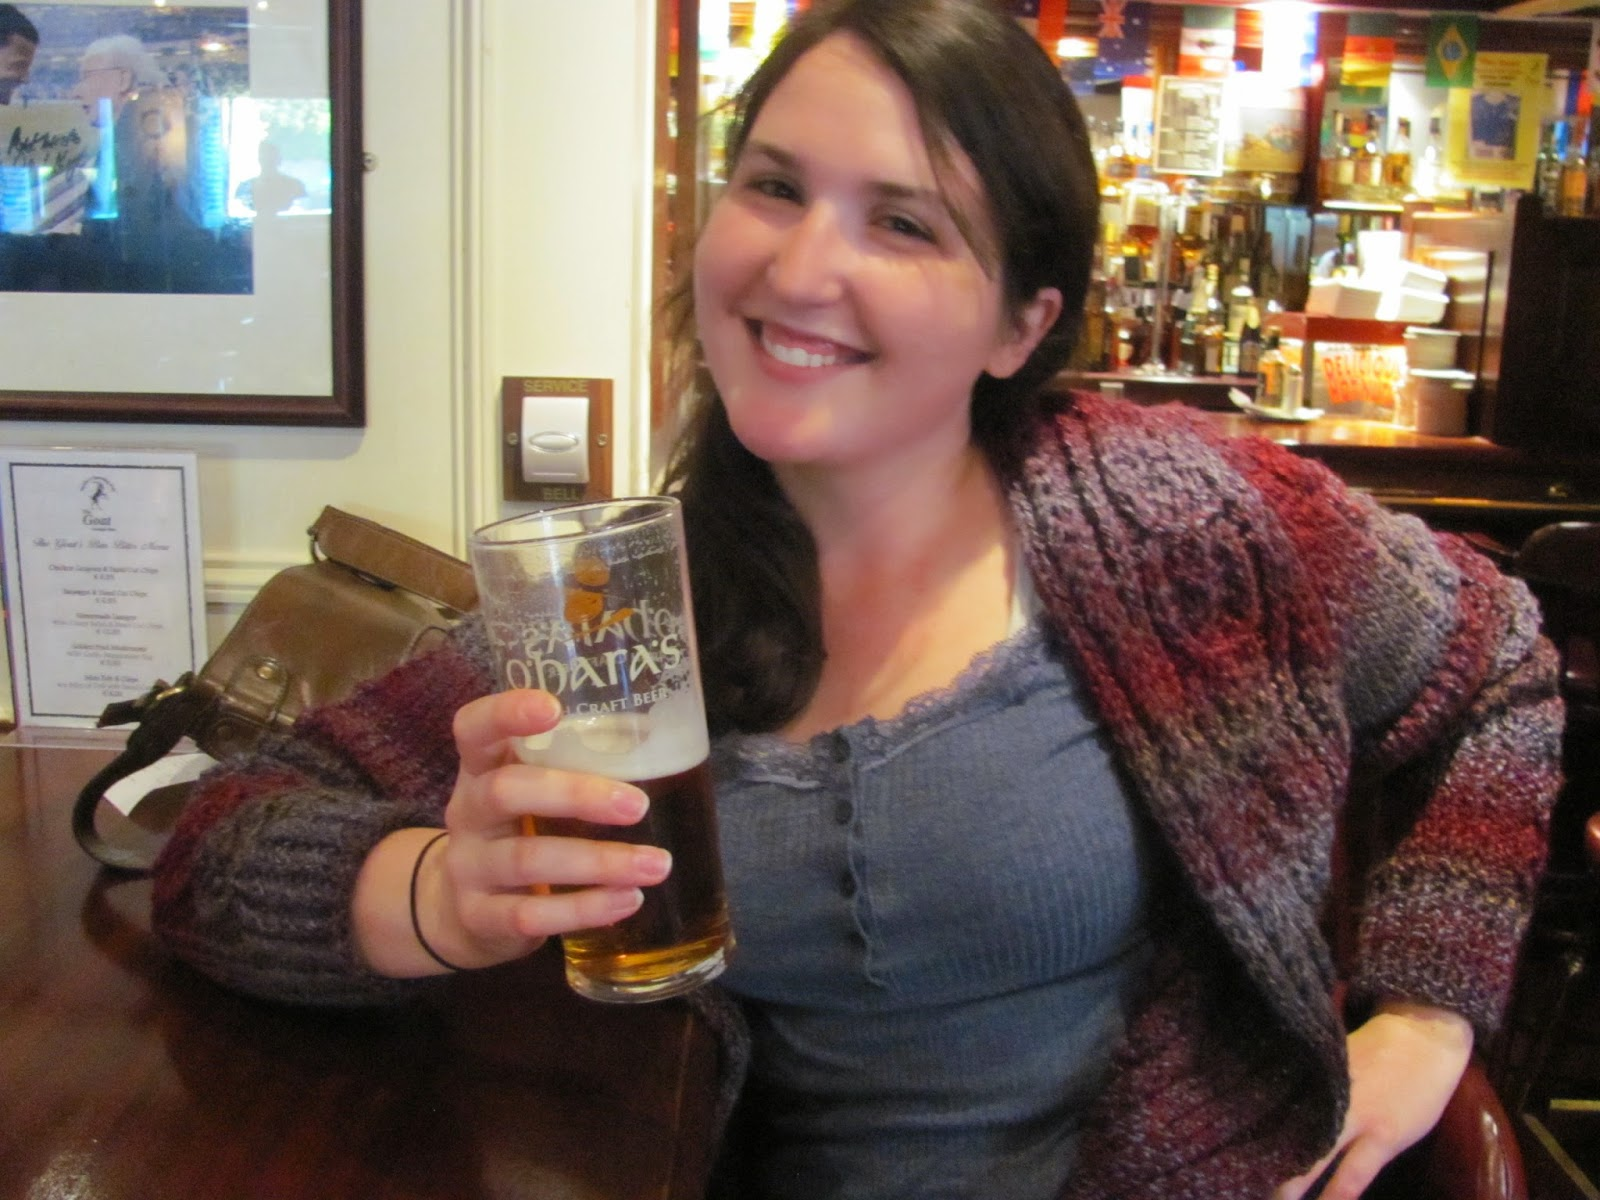 Sara modelling the front of her sweater in a pub